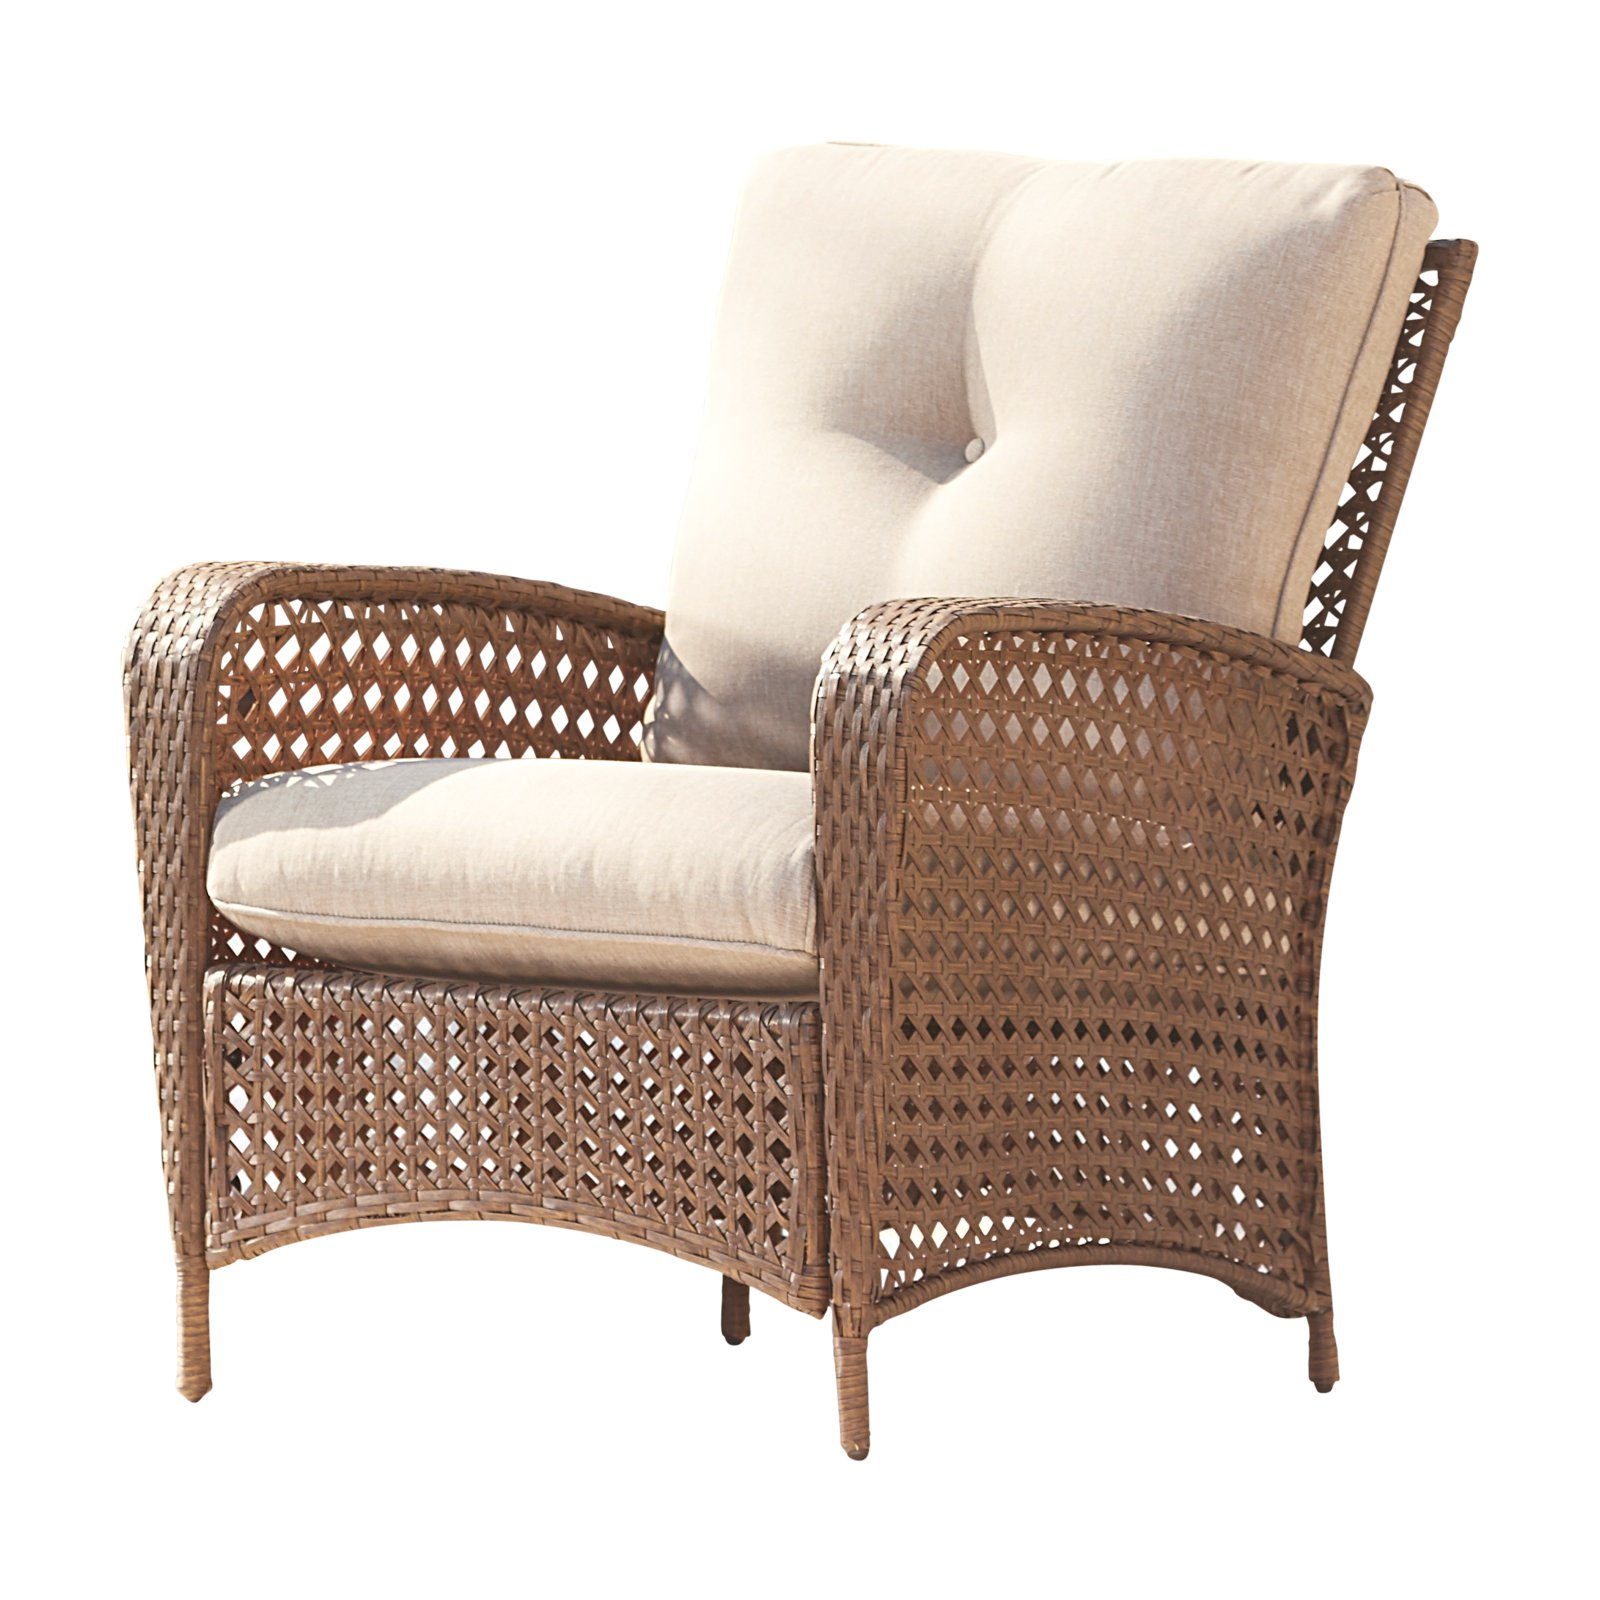 Cosco Outdoor Living Lakewood Ranch Woven Wicker Lounge ... on Outdoor Living Wicker  id=26737